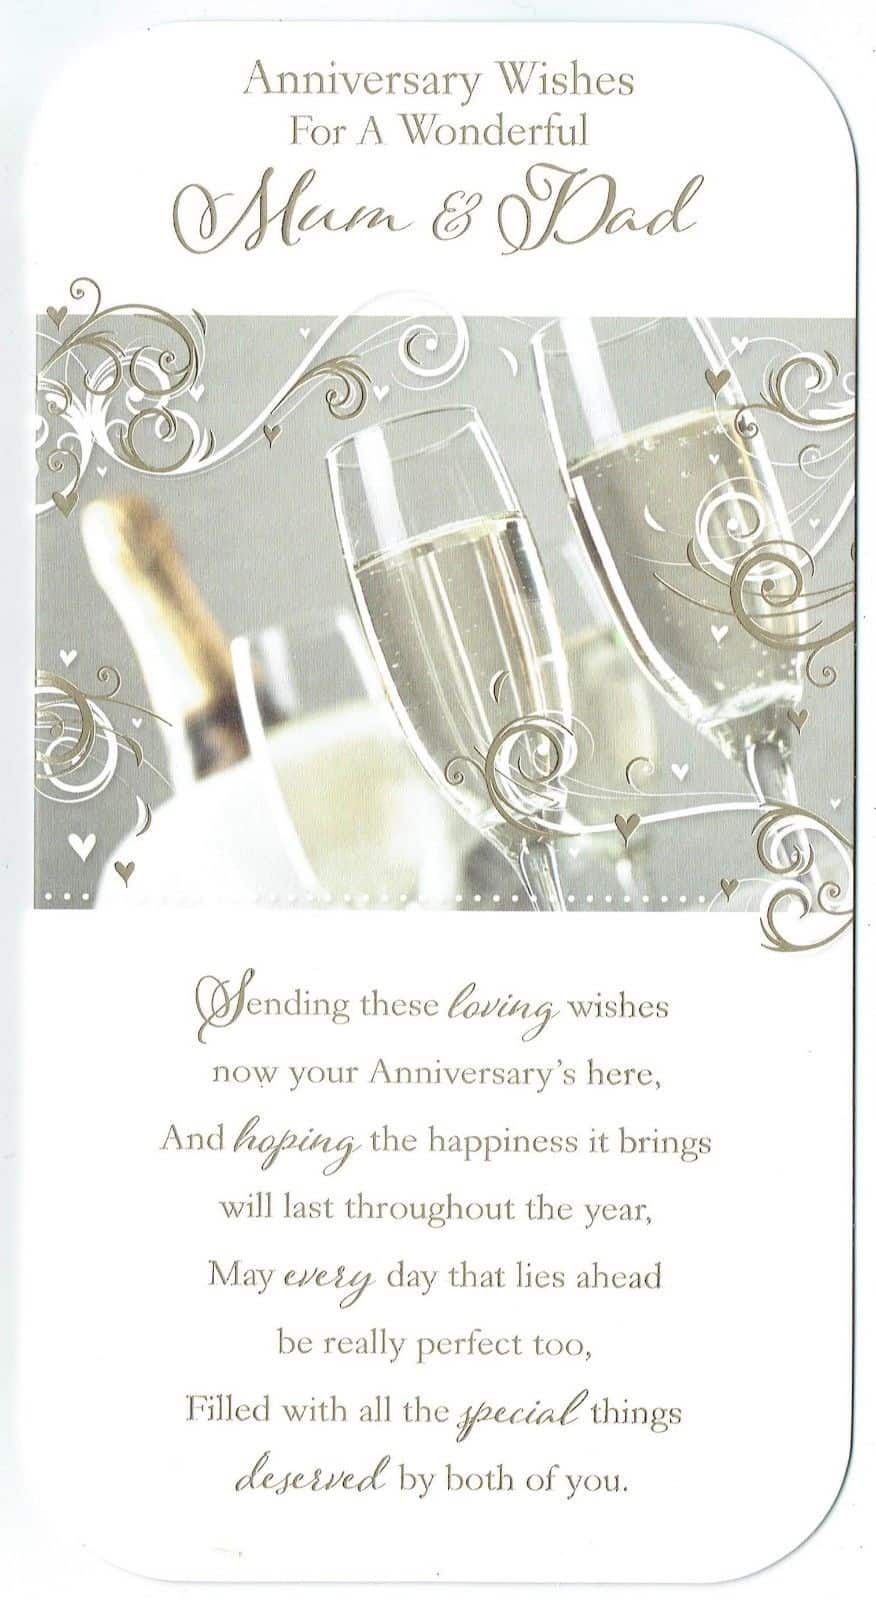 mum and dad wedding anniversary card champagne design with